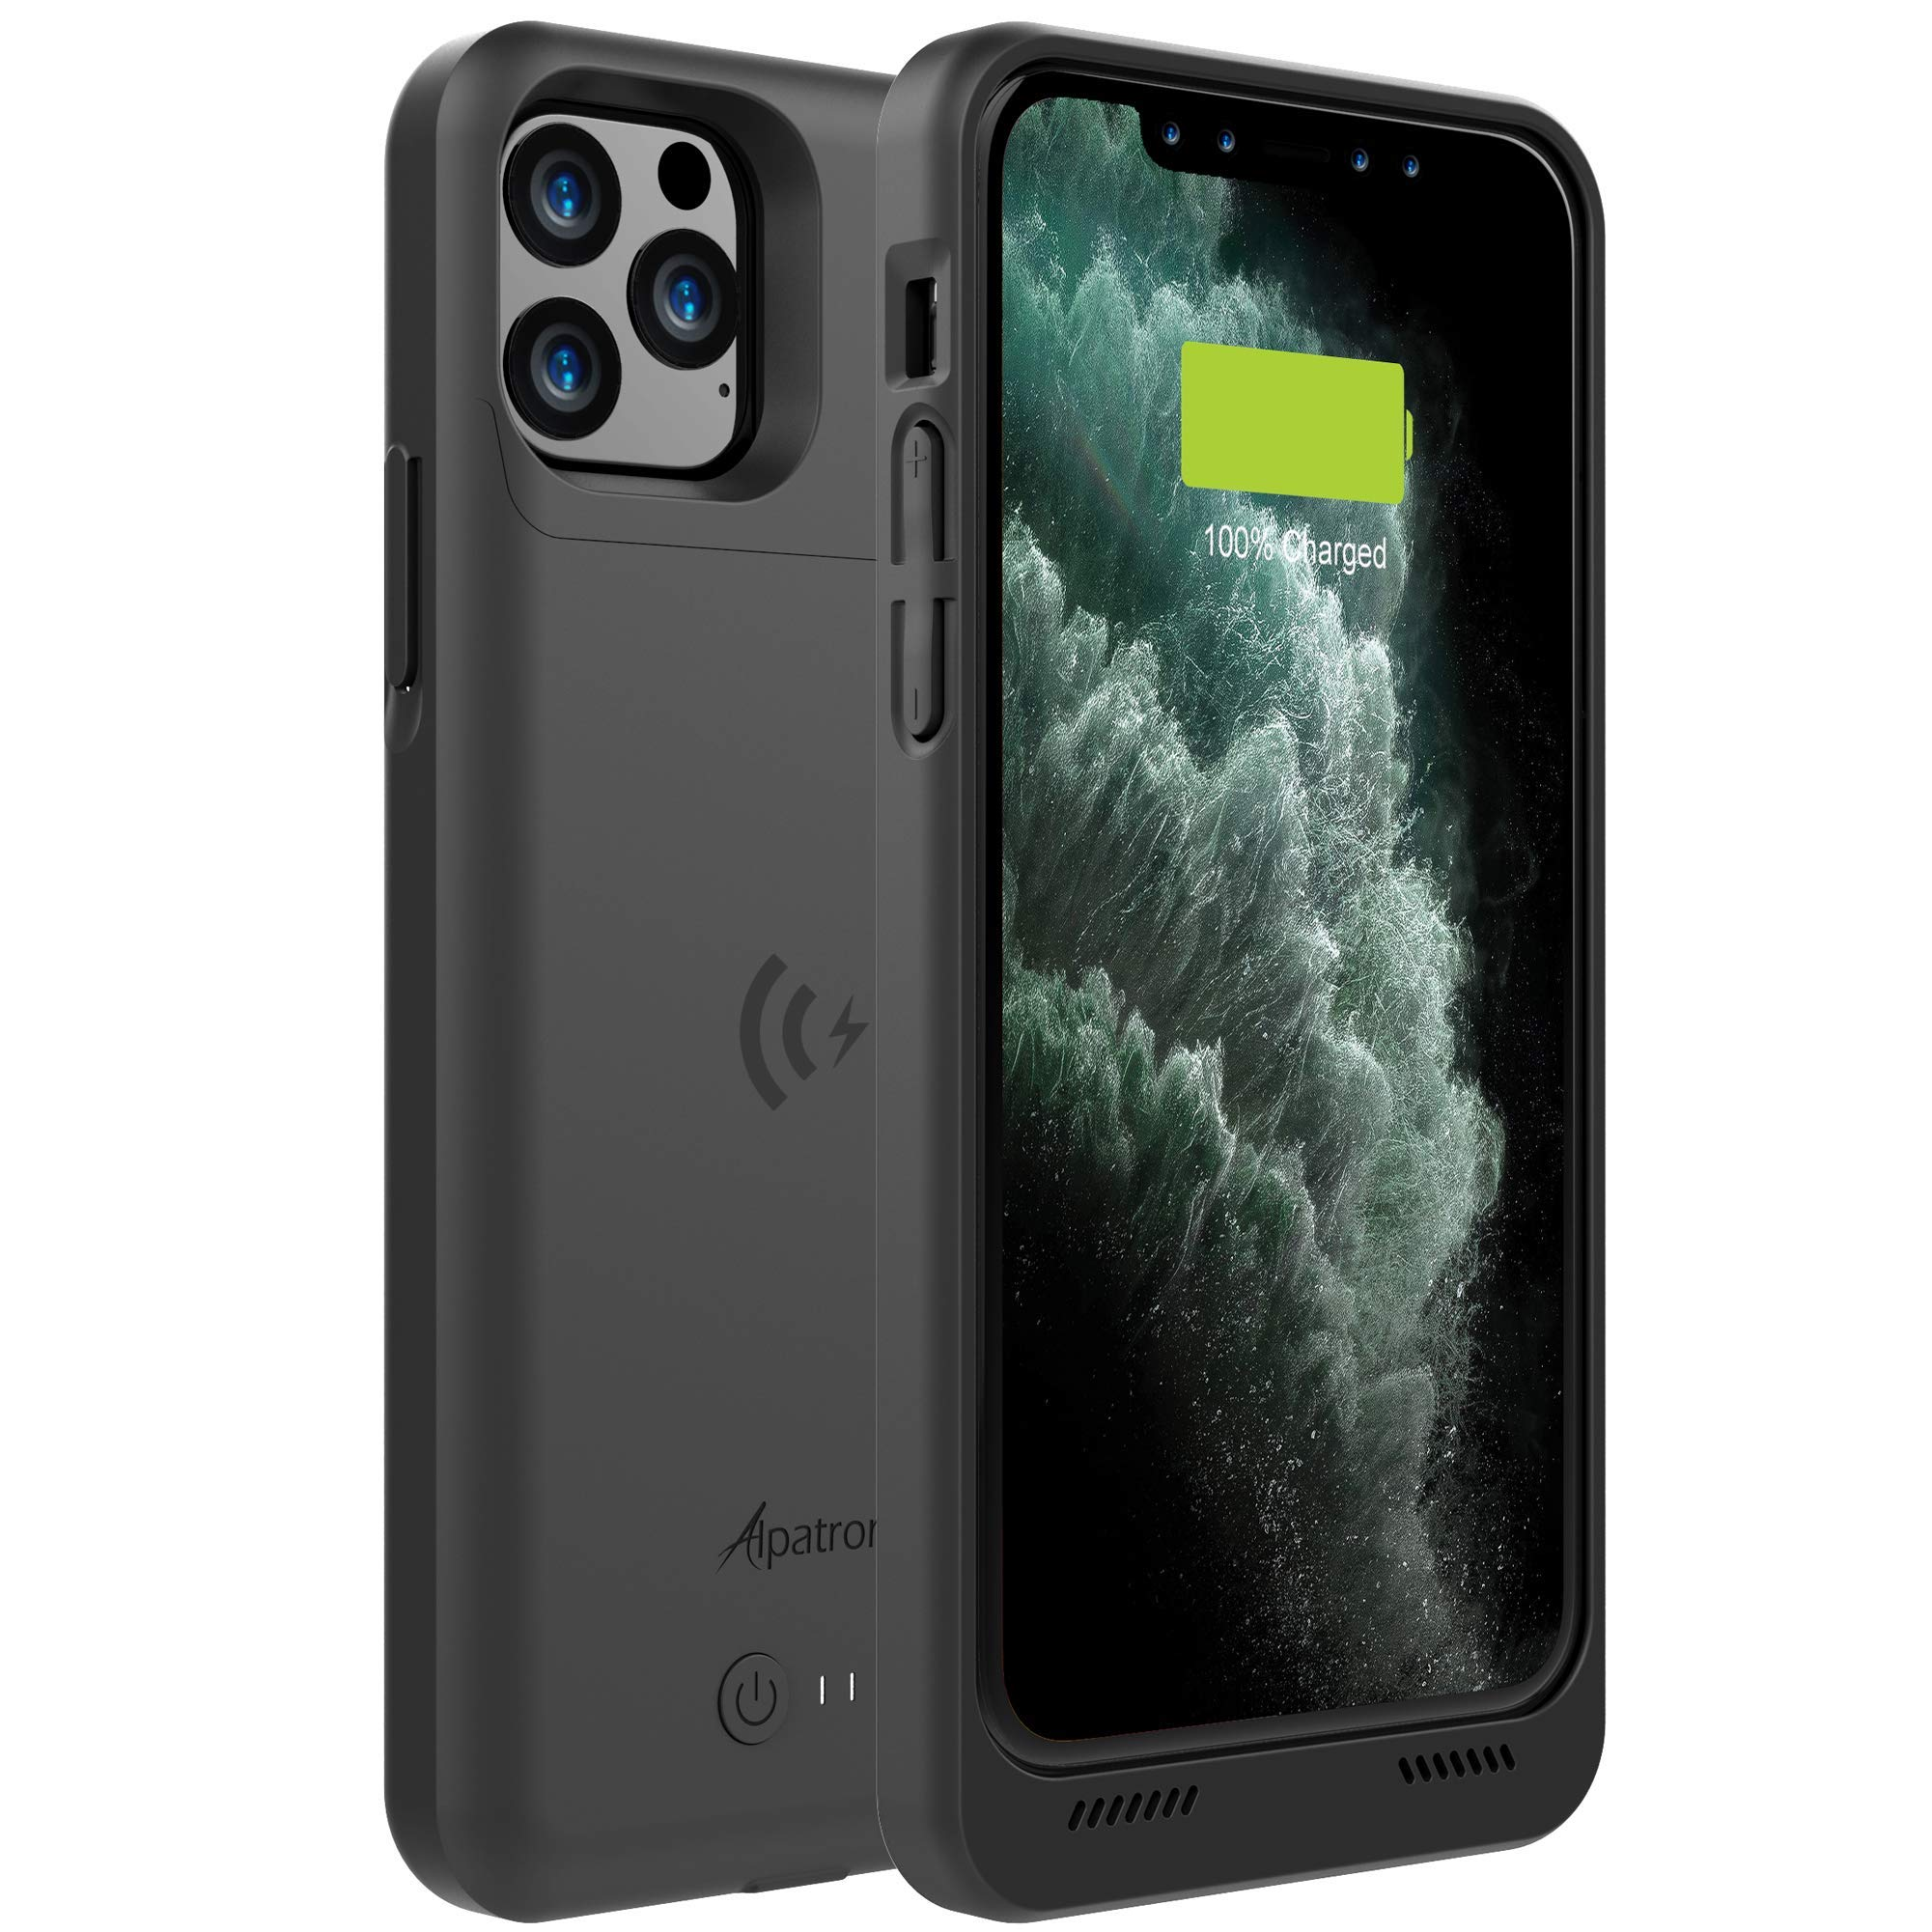 Alpatronix iPhone 11 Pro Battery Case, 4200mAh Slim Portable Protective Extended Charger Cover with Qi Wireless Charging Compatible with iPhone 11 Pro (5.8 inch) BXXI Pro - (Black) by Alpatronix